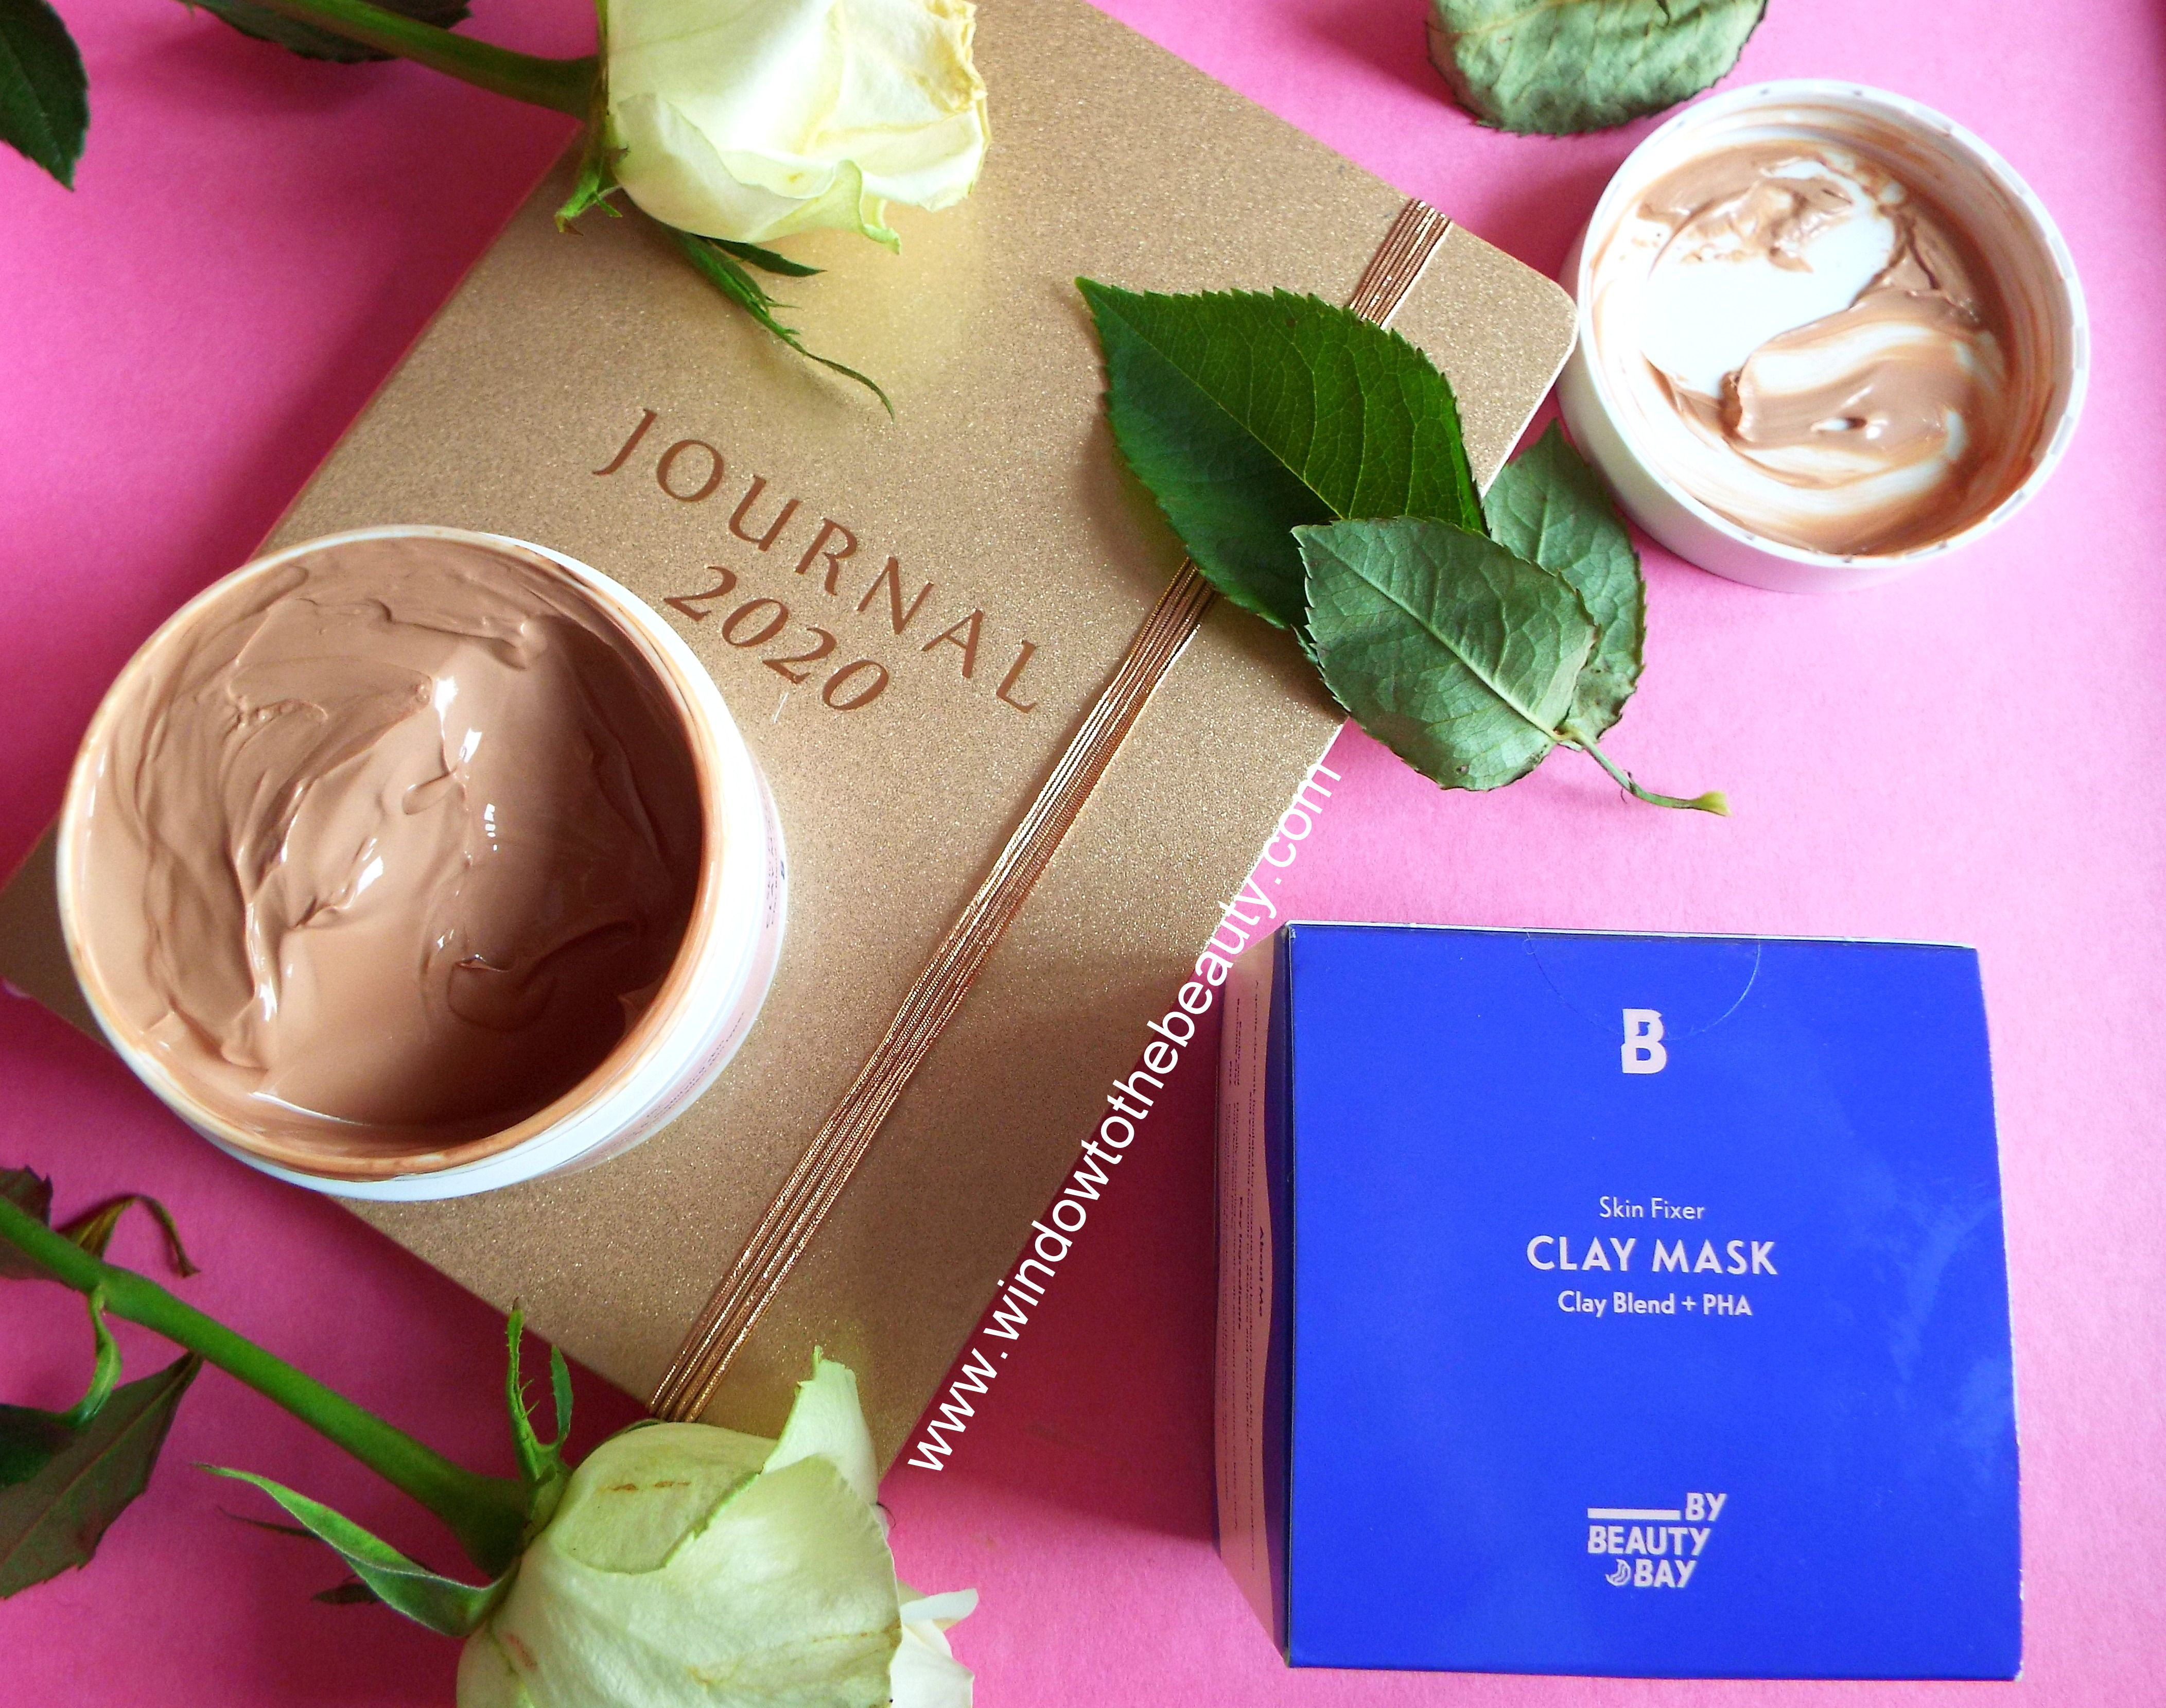 Beauty Bay Own Skin Care Range Review / Better Than The